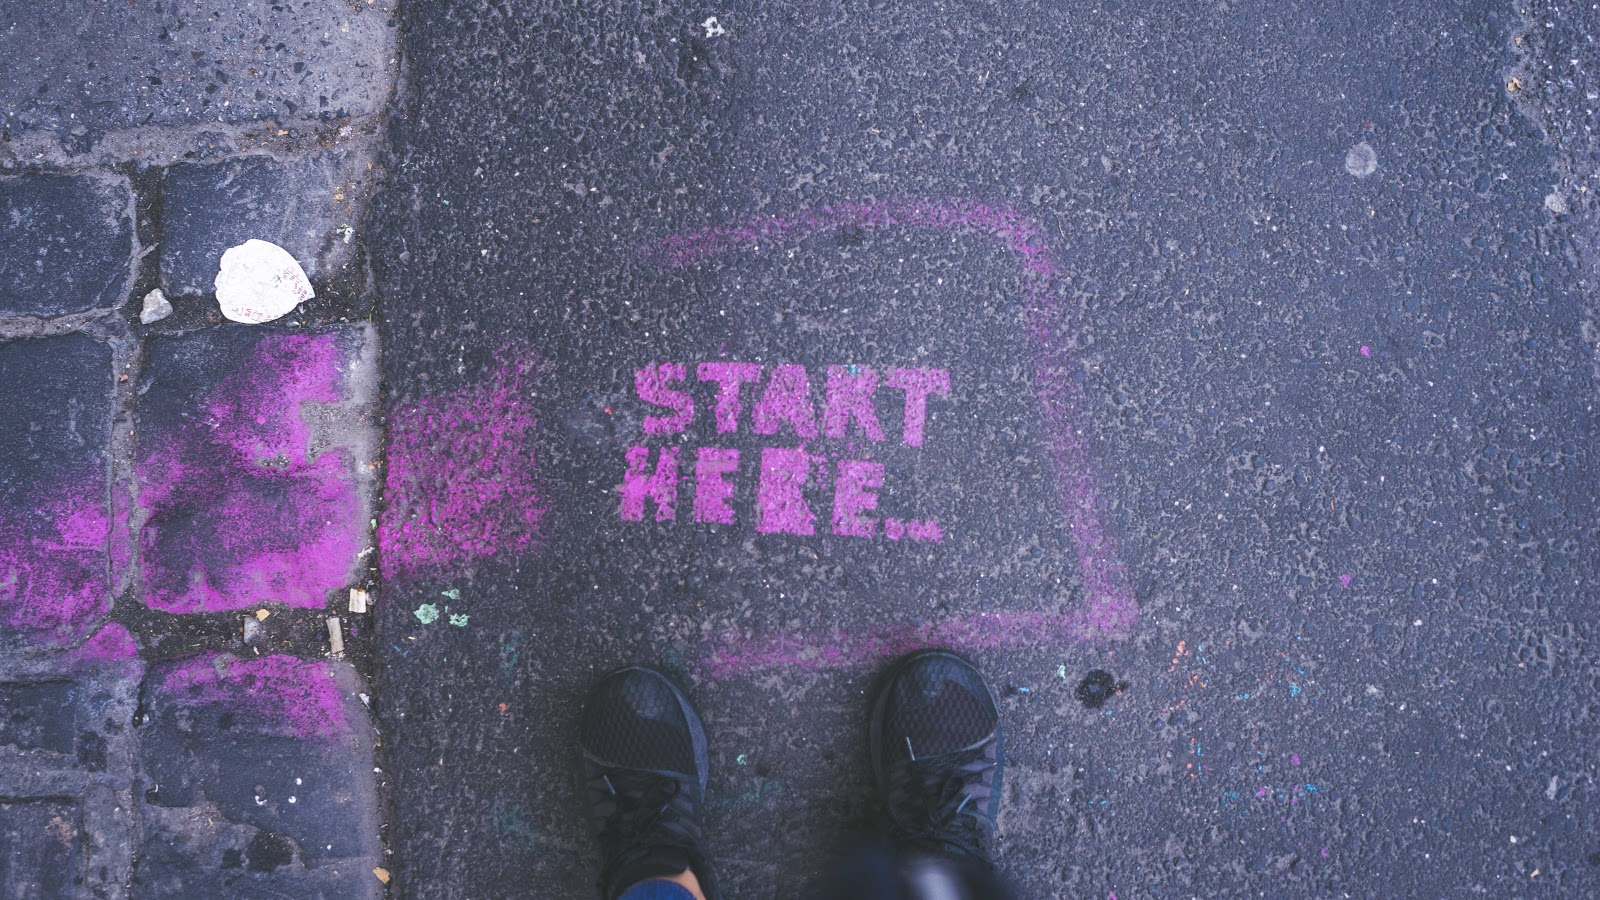 Two feet on a road with text saying start here